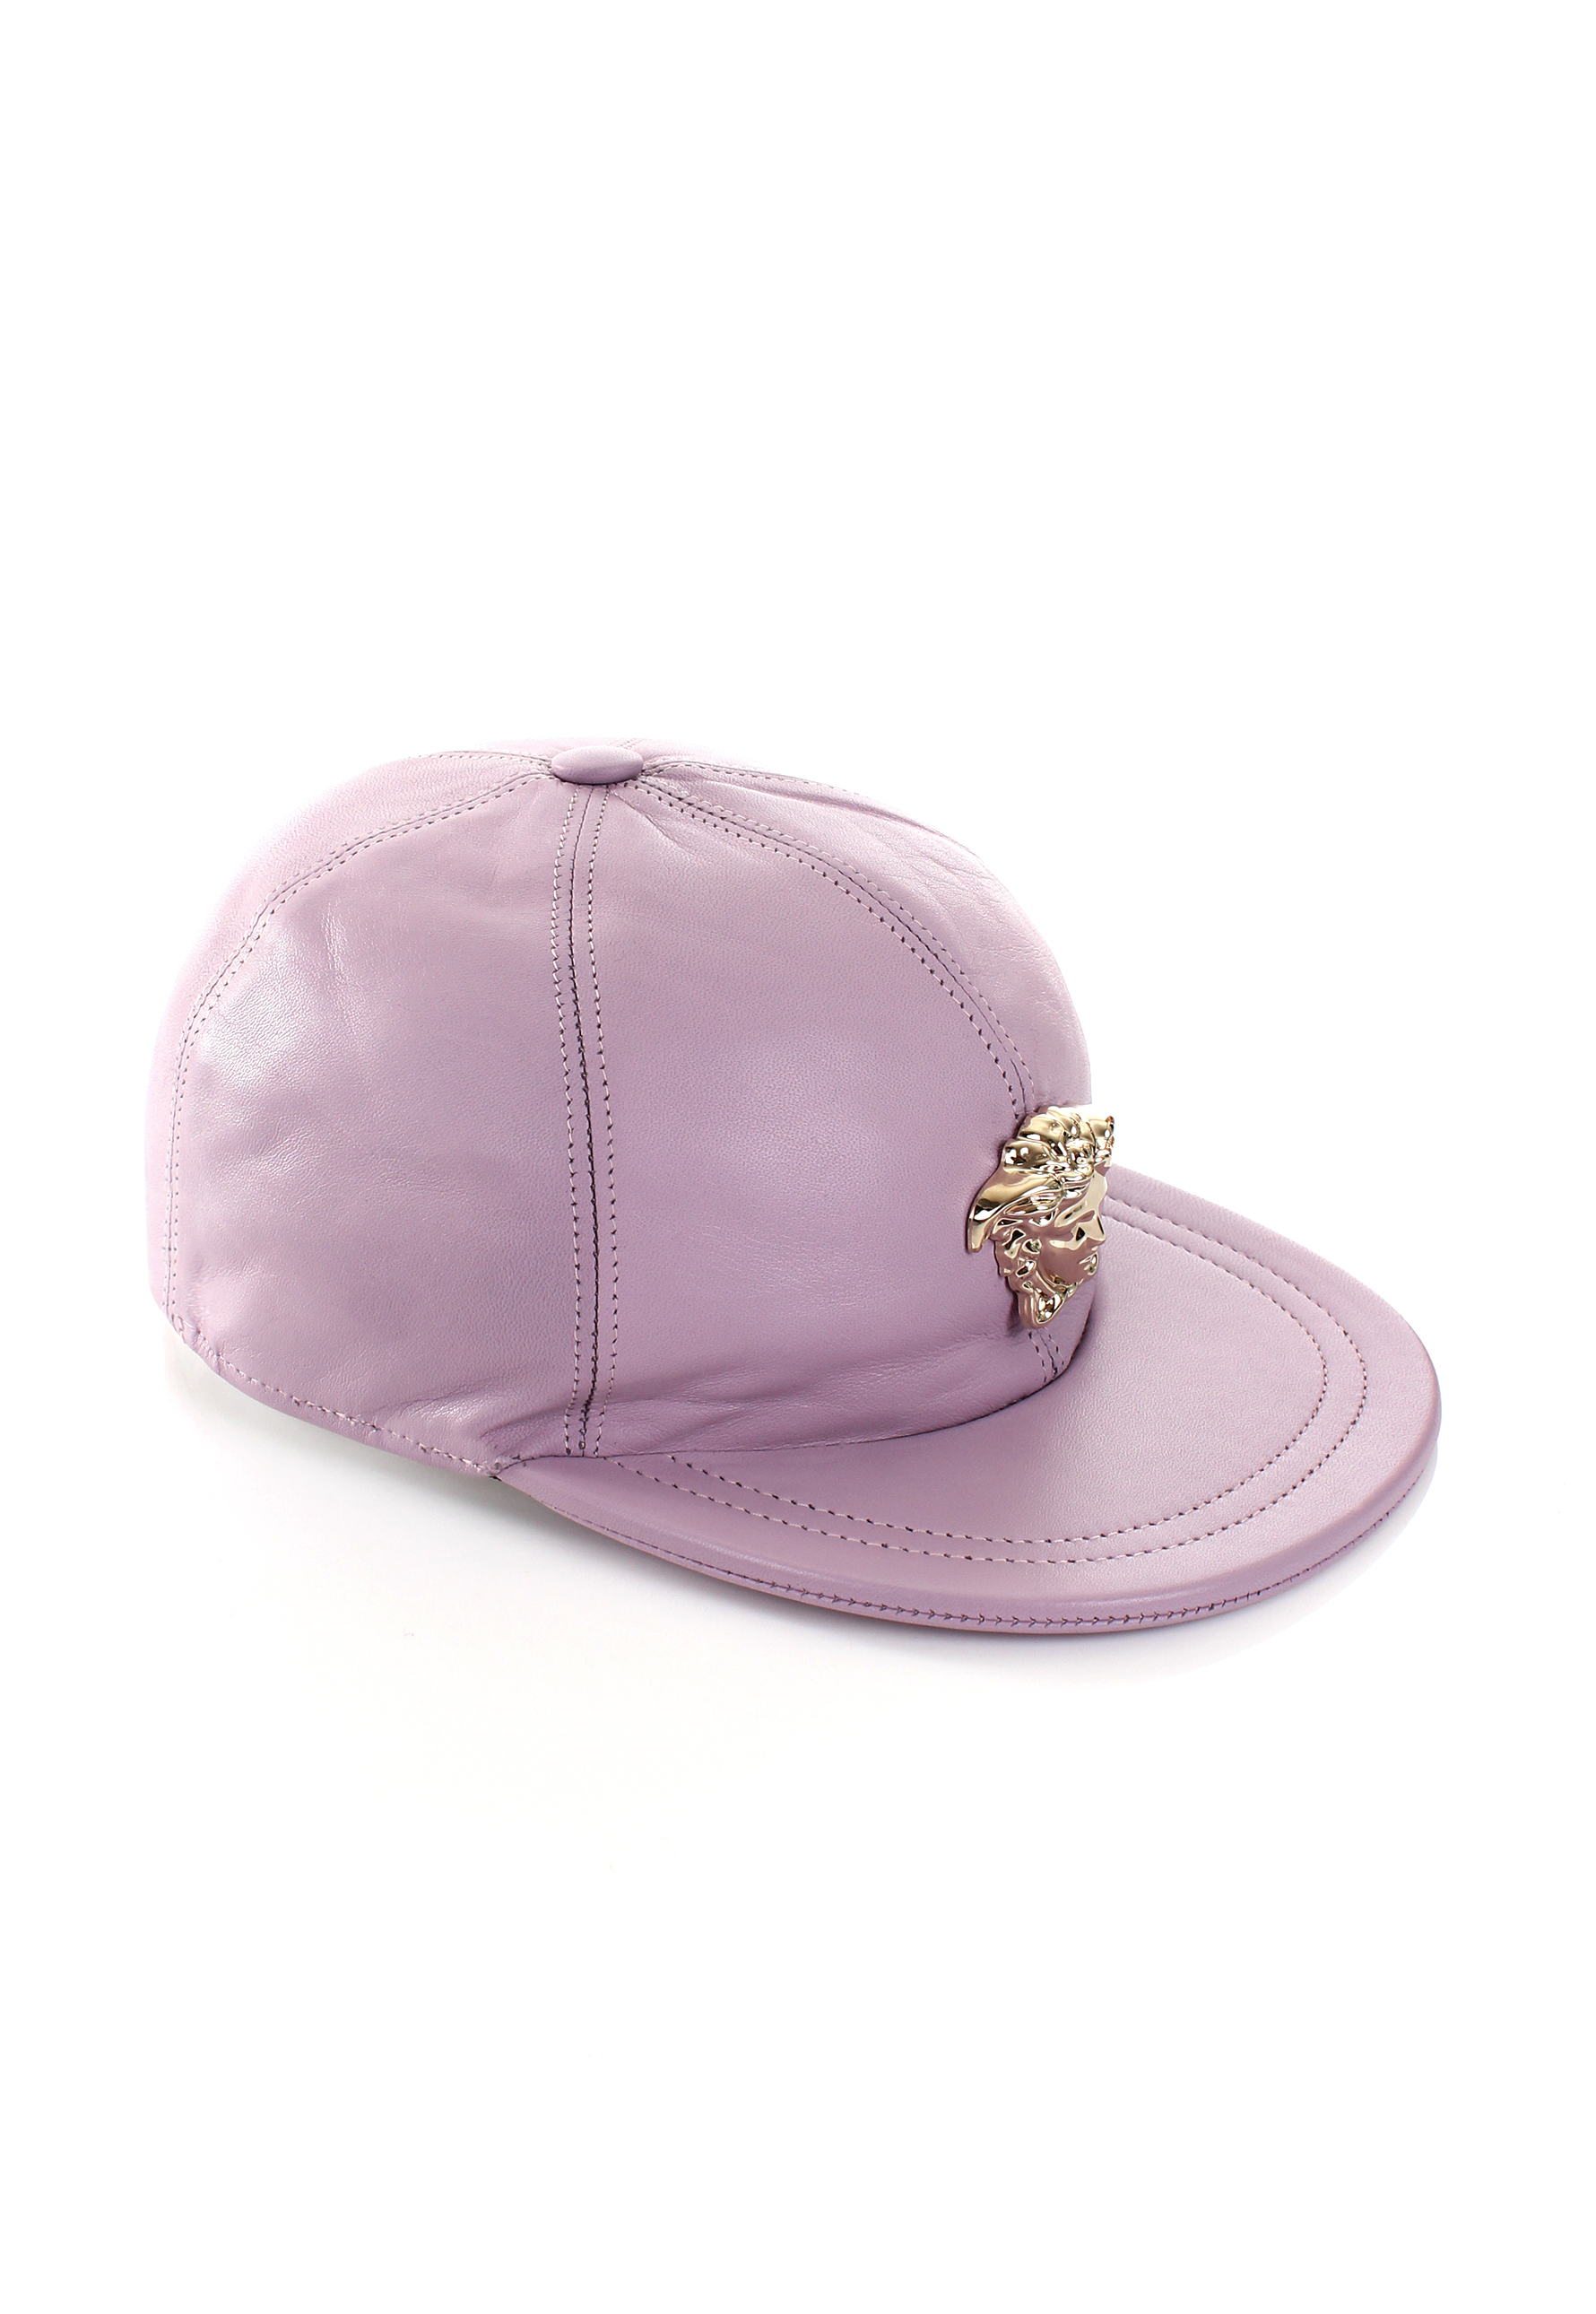 b81bd944f86 Versace Gold Medusa Leather Cap Pink in Pink - Lyst